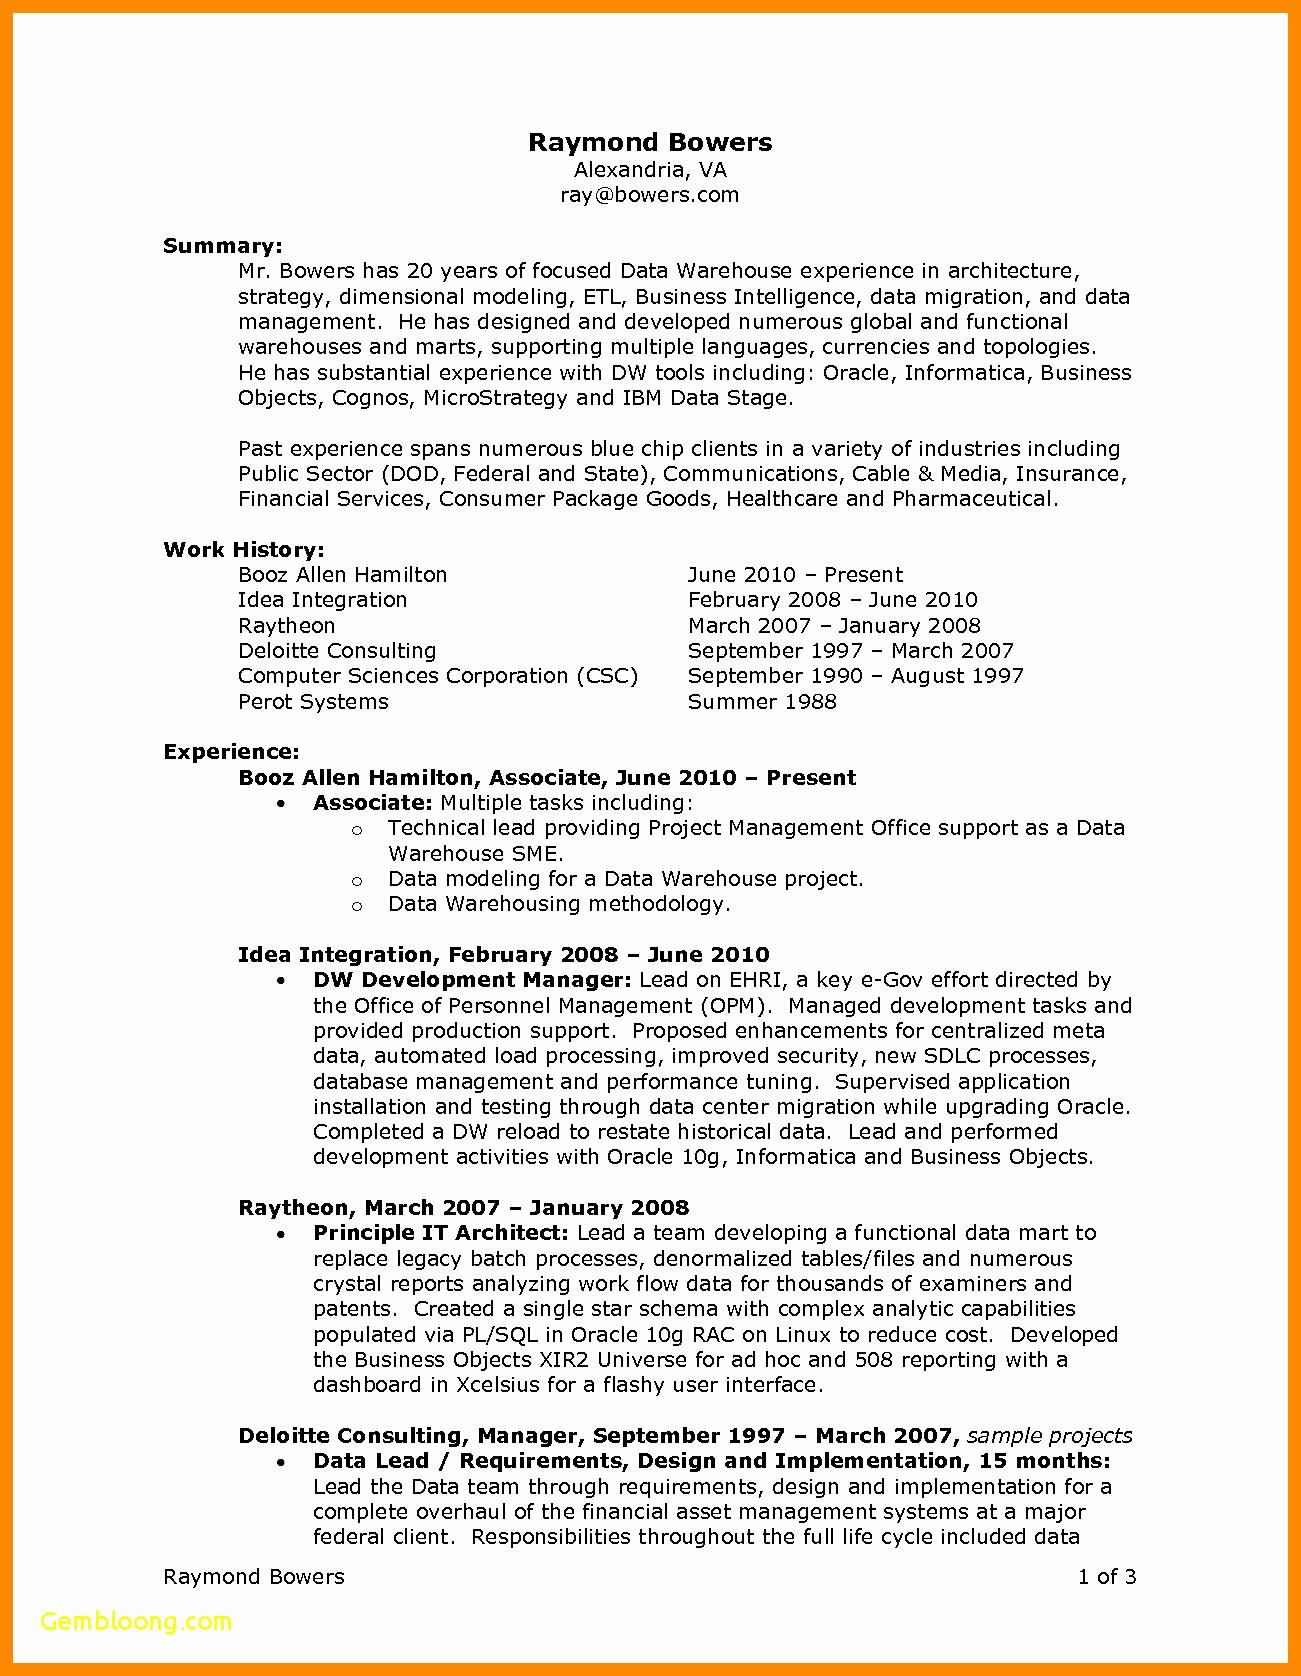 Resume Templates Virginia Tech Resume Templates Mission Statement Examples Resume Examples Job Resume